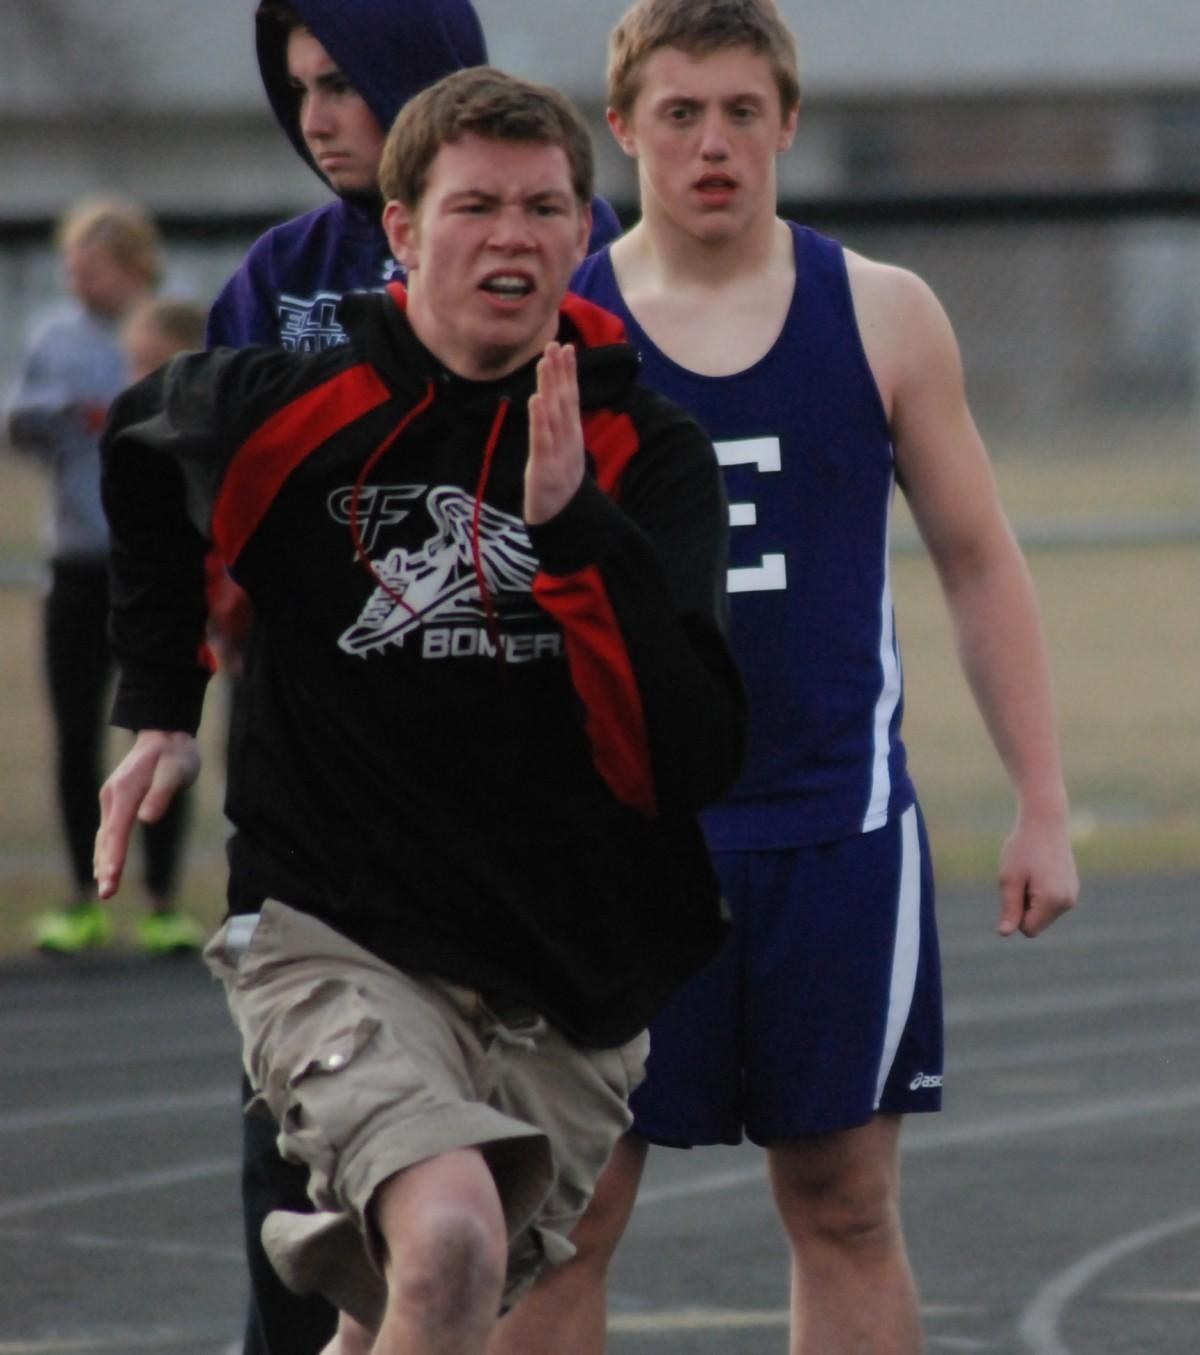 Gus Foss breaks out of the starting blocks in a recent meet